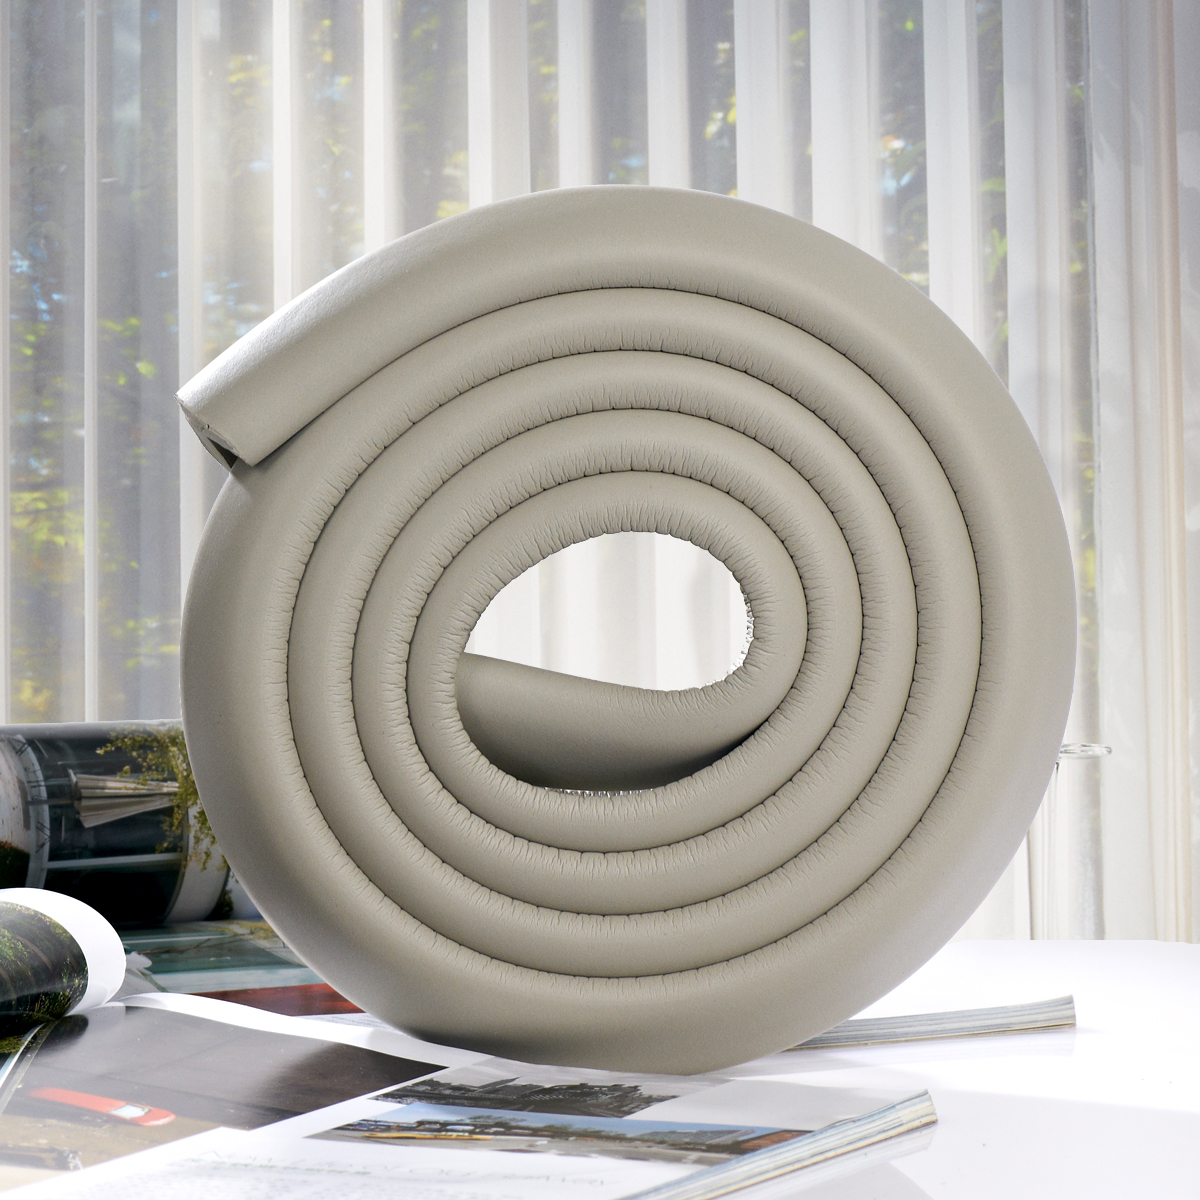 2M L-shaped Thicken Safety Table Edge Corner Protector Guard Cushion Anti-collision Bumper Strip (Grey)